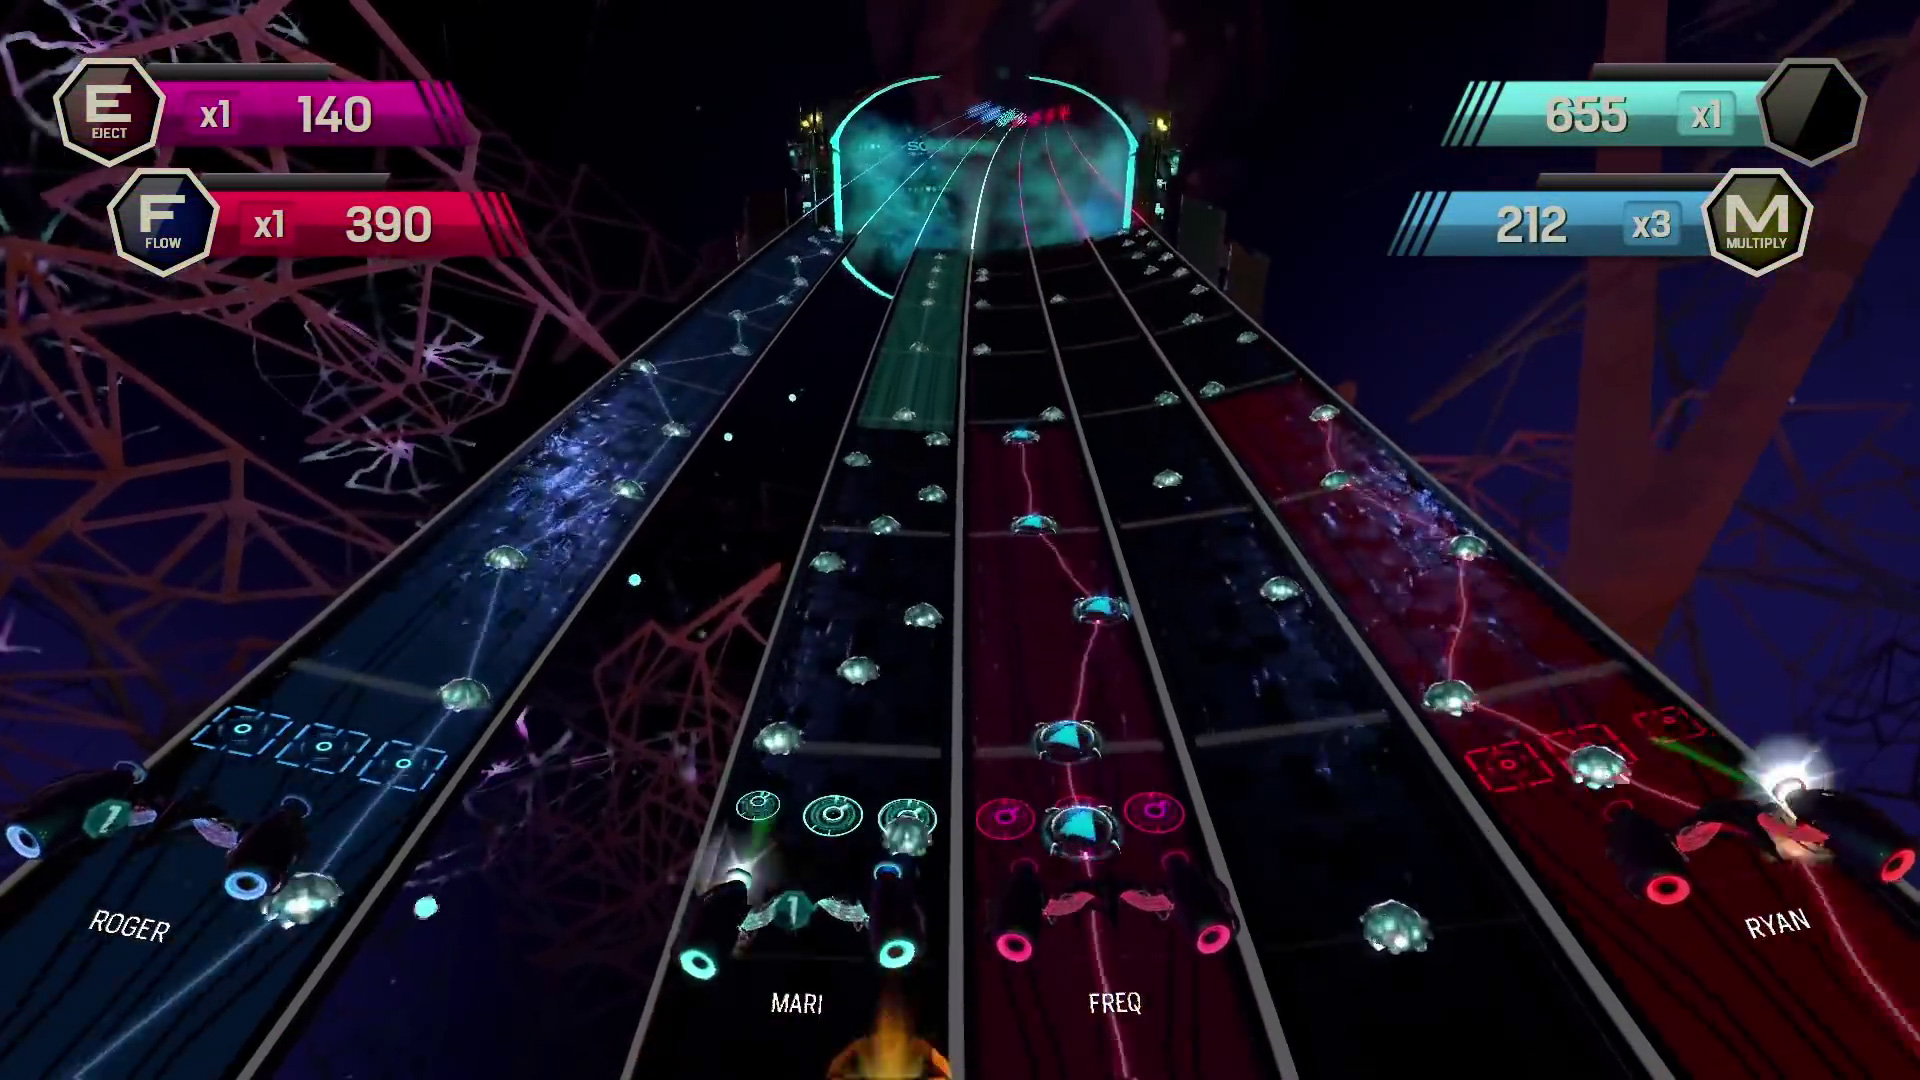 Amplitude's team multiplayer mode could be the life of the party